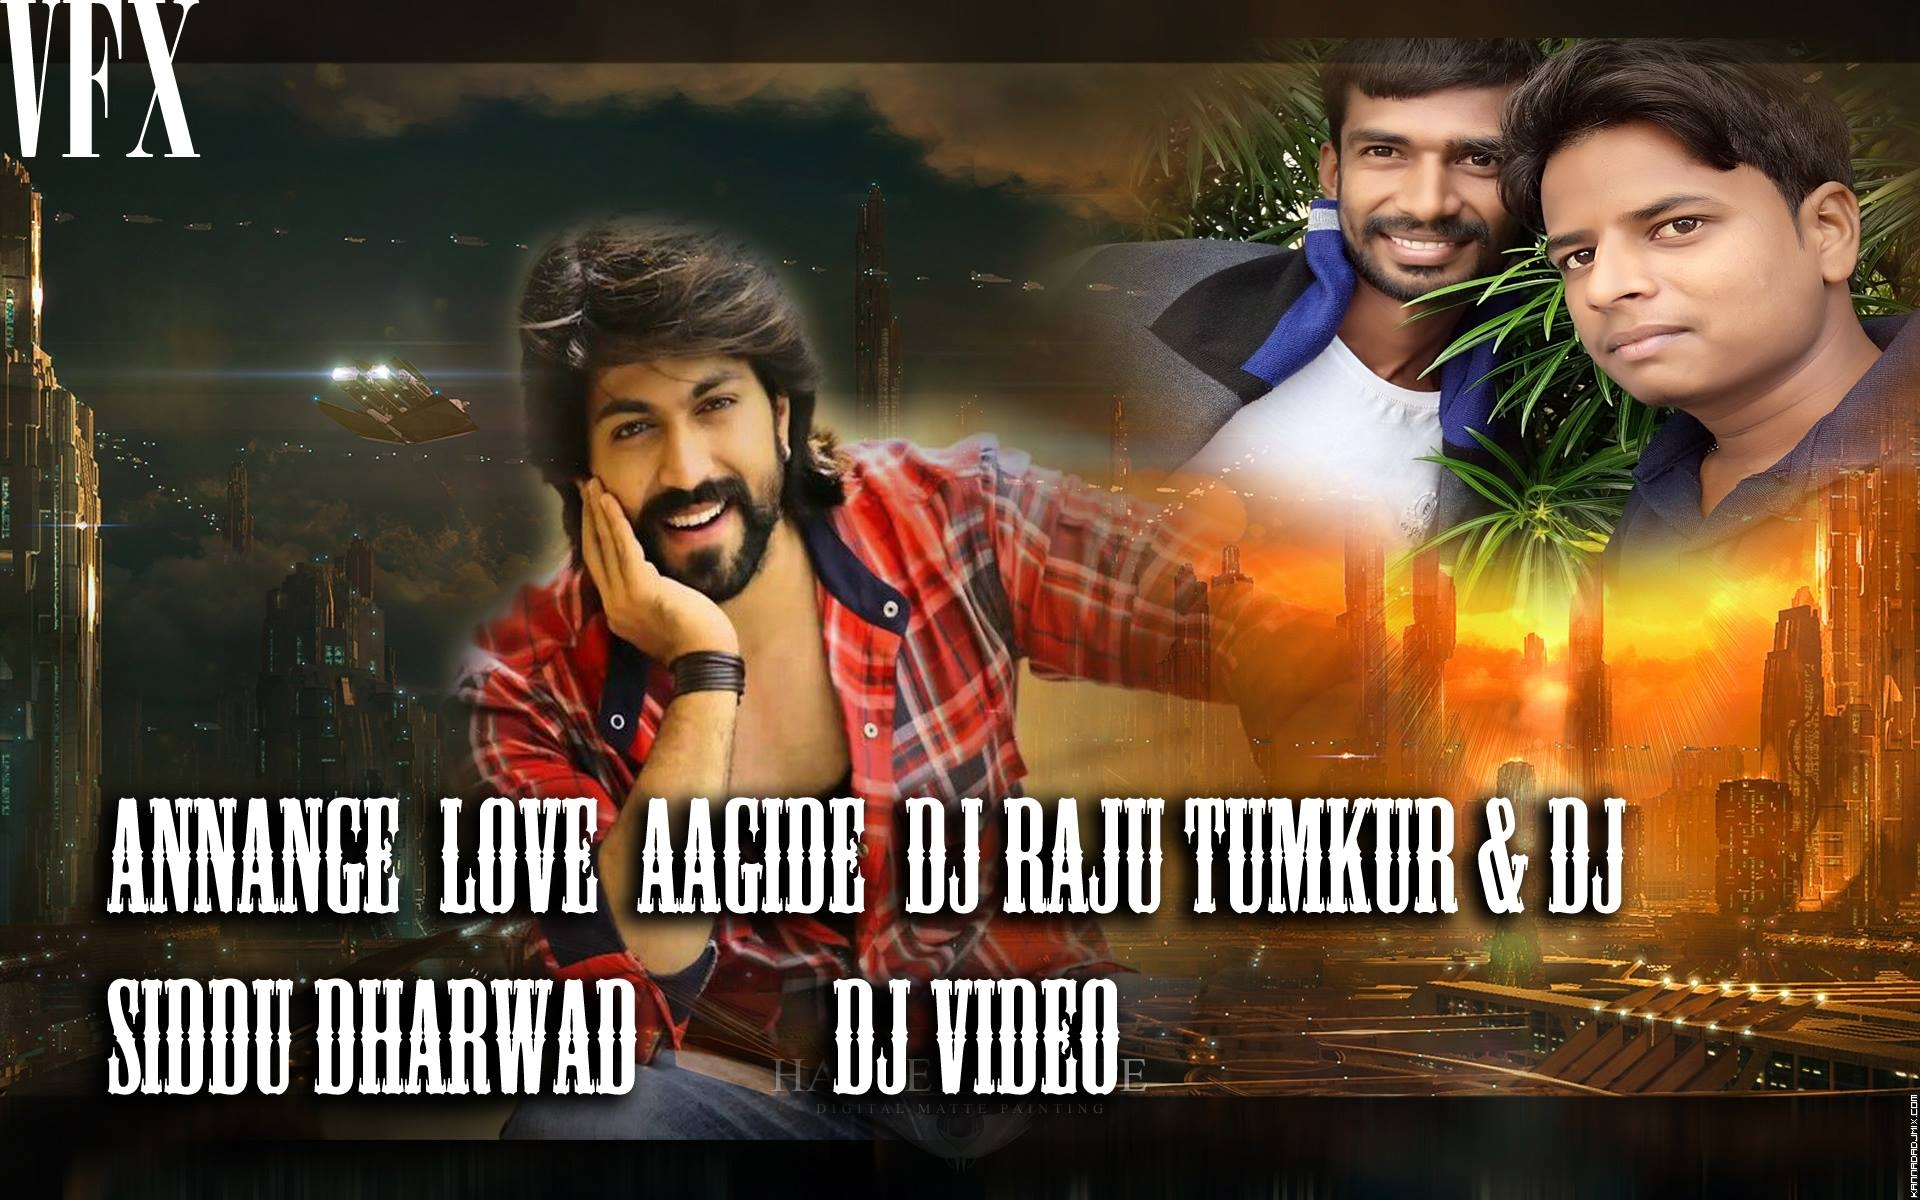 ANNANGE LOVE AAGIDE(DJ RAJU &DJ SIDDU DHARWAD(DJ VIDEO.mp4